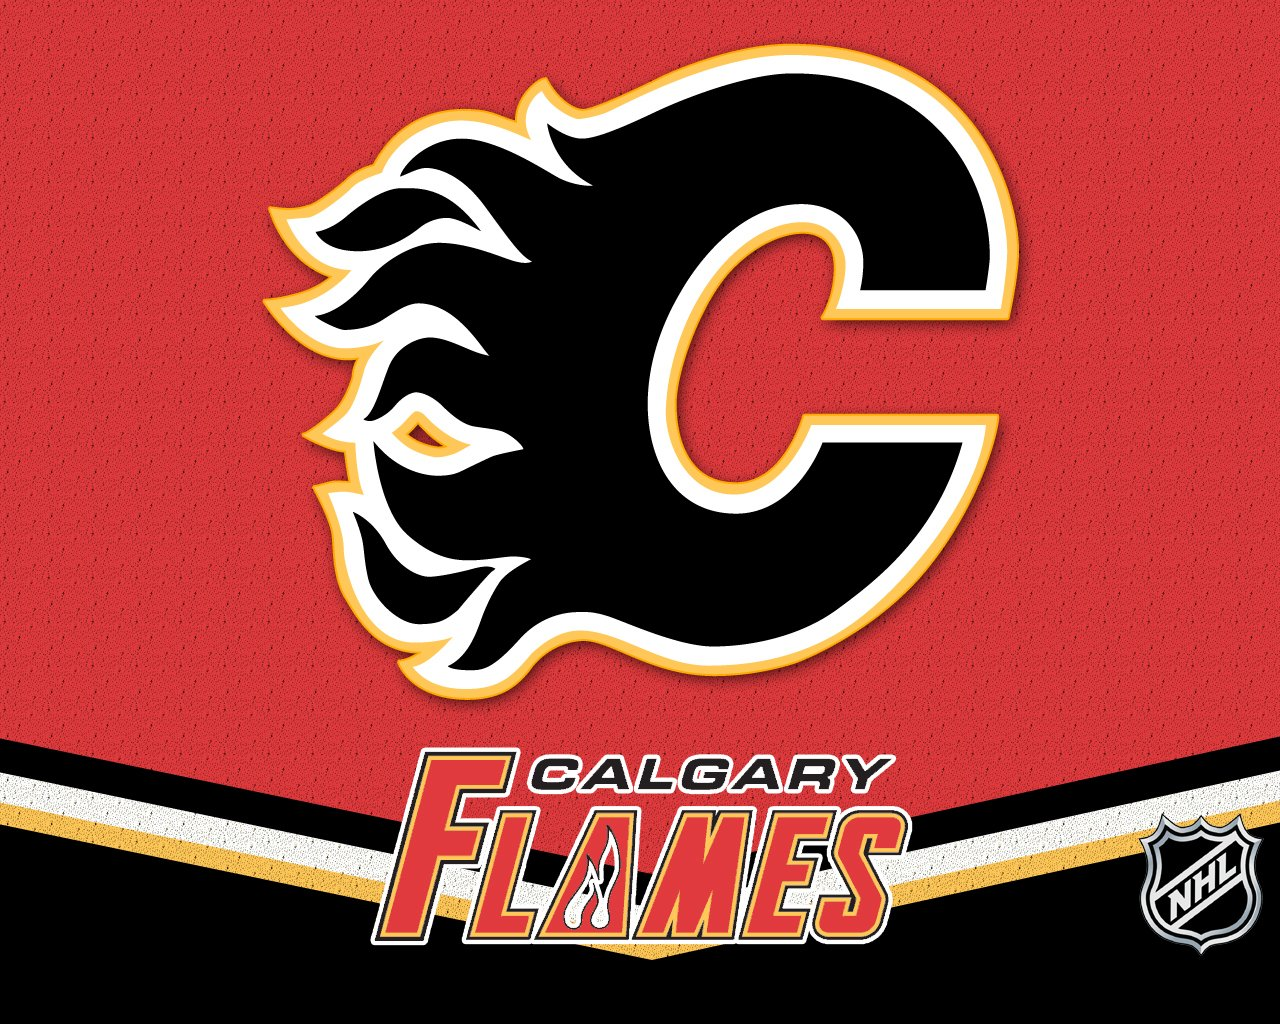 calgary flames wallpaper 30011jpg 1280x1024